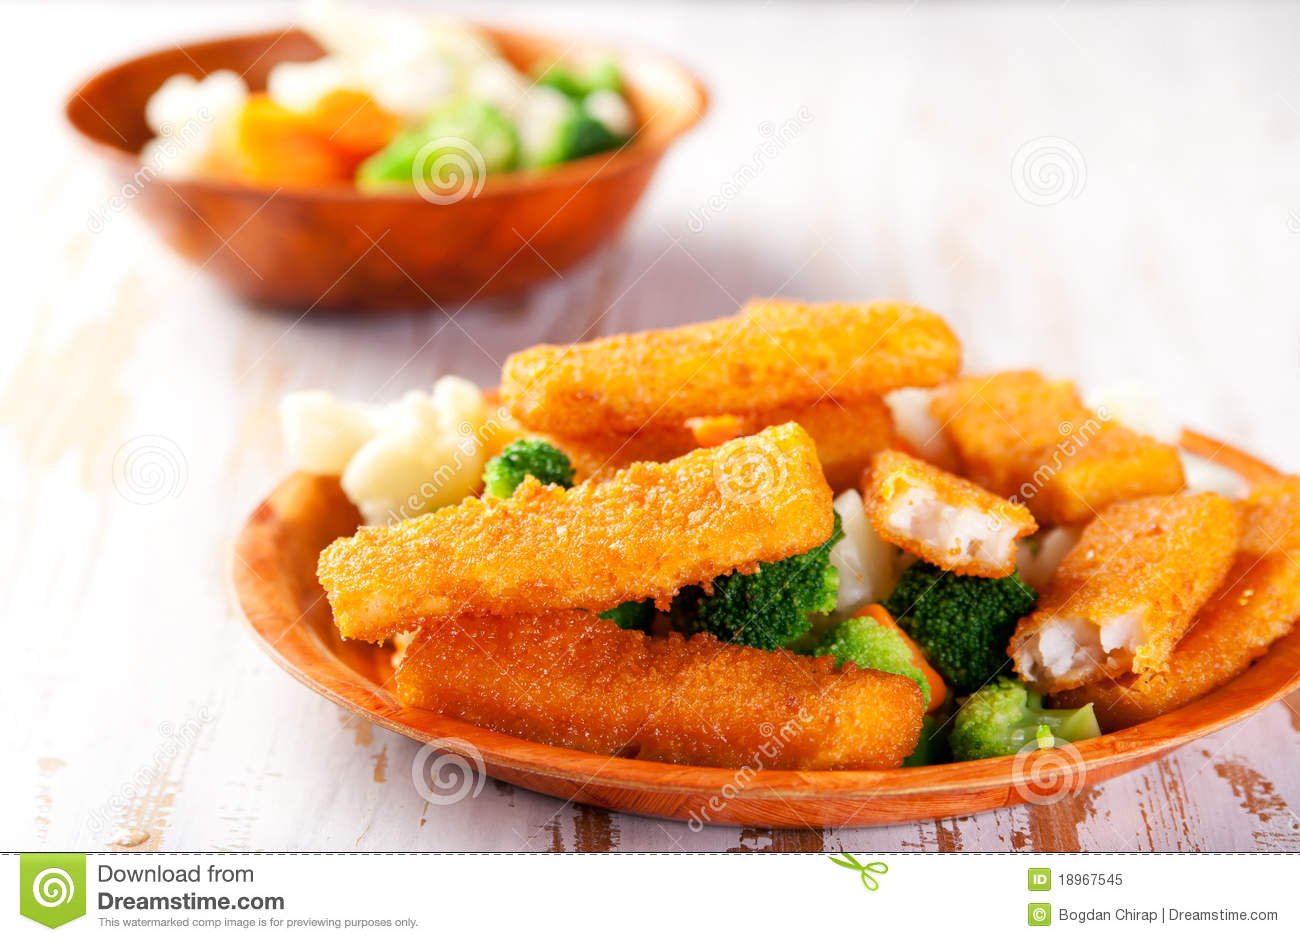 Fish fingers with vegetables side dish royalty free stock for Side dish for fish